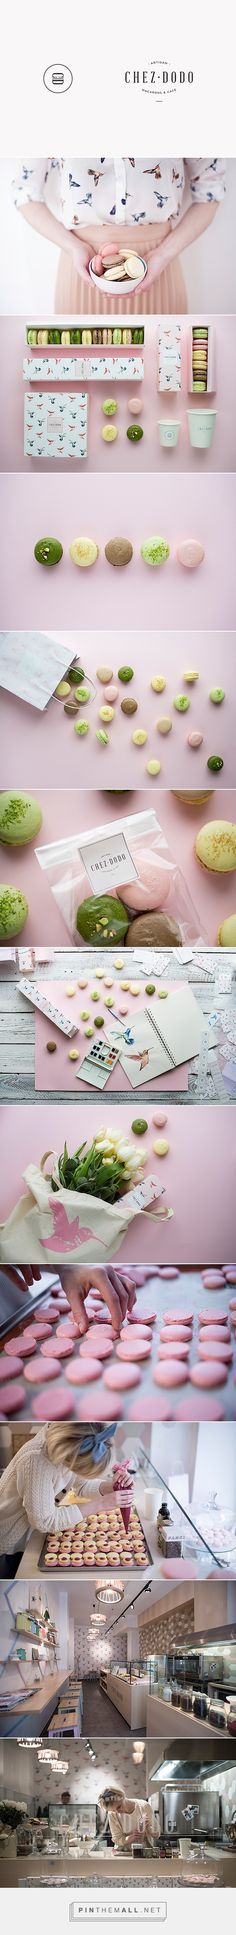 C H E Z D O D O | art direction & graphic design for an artisan macaron manufacture